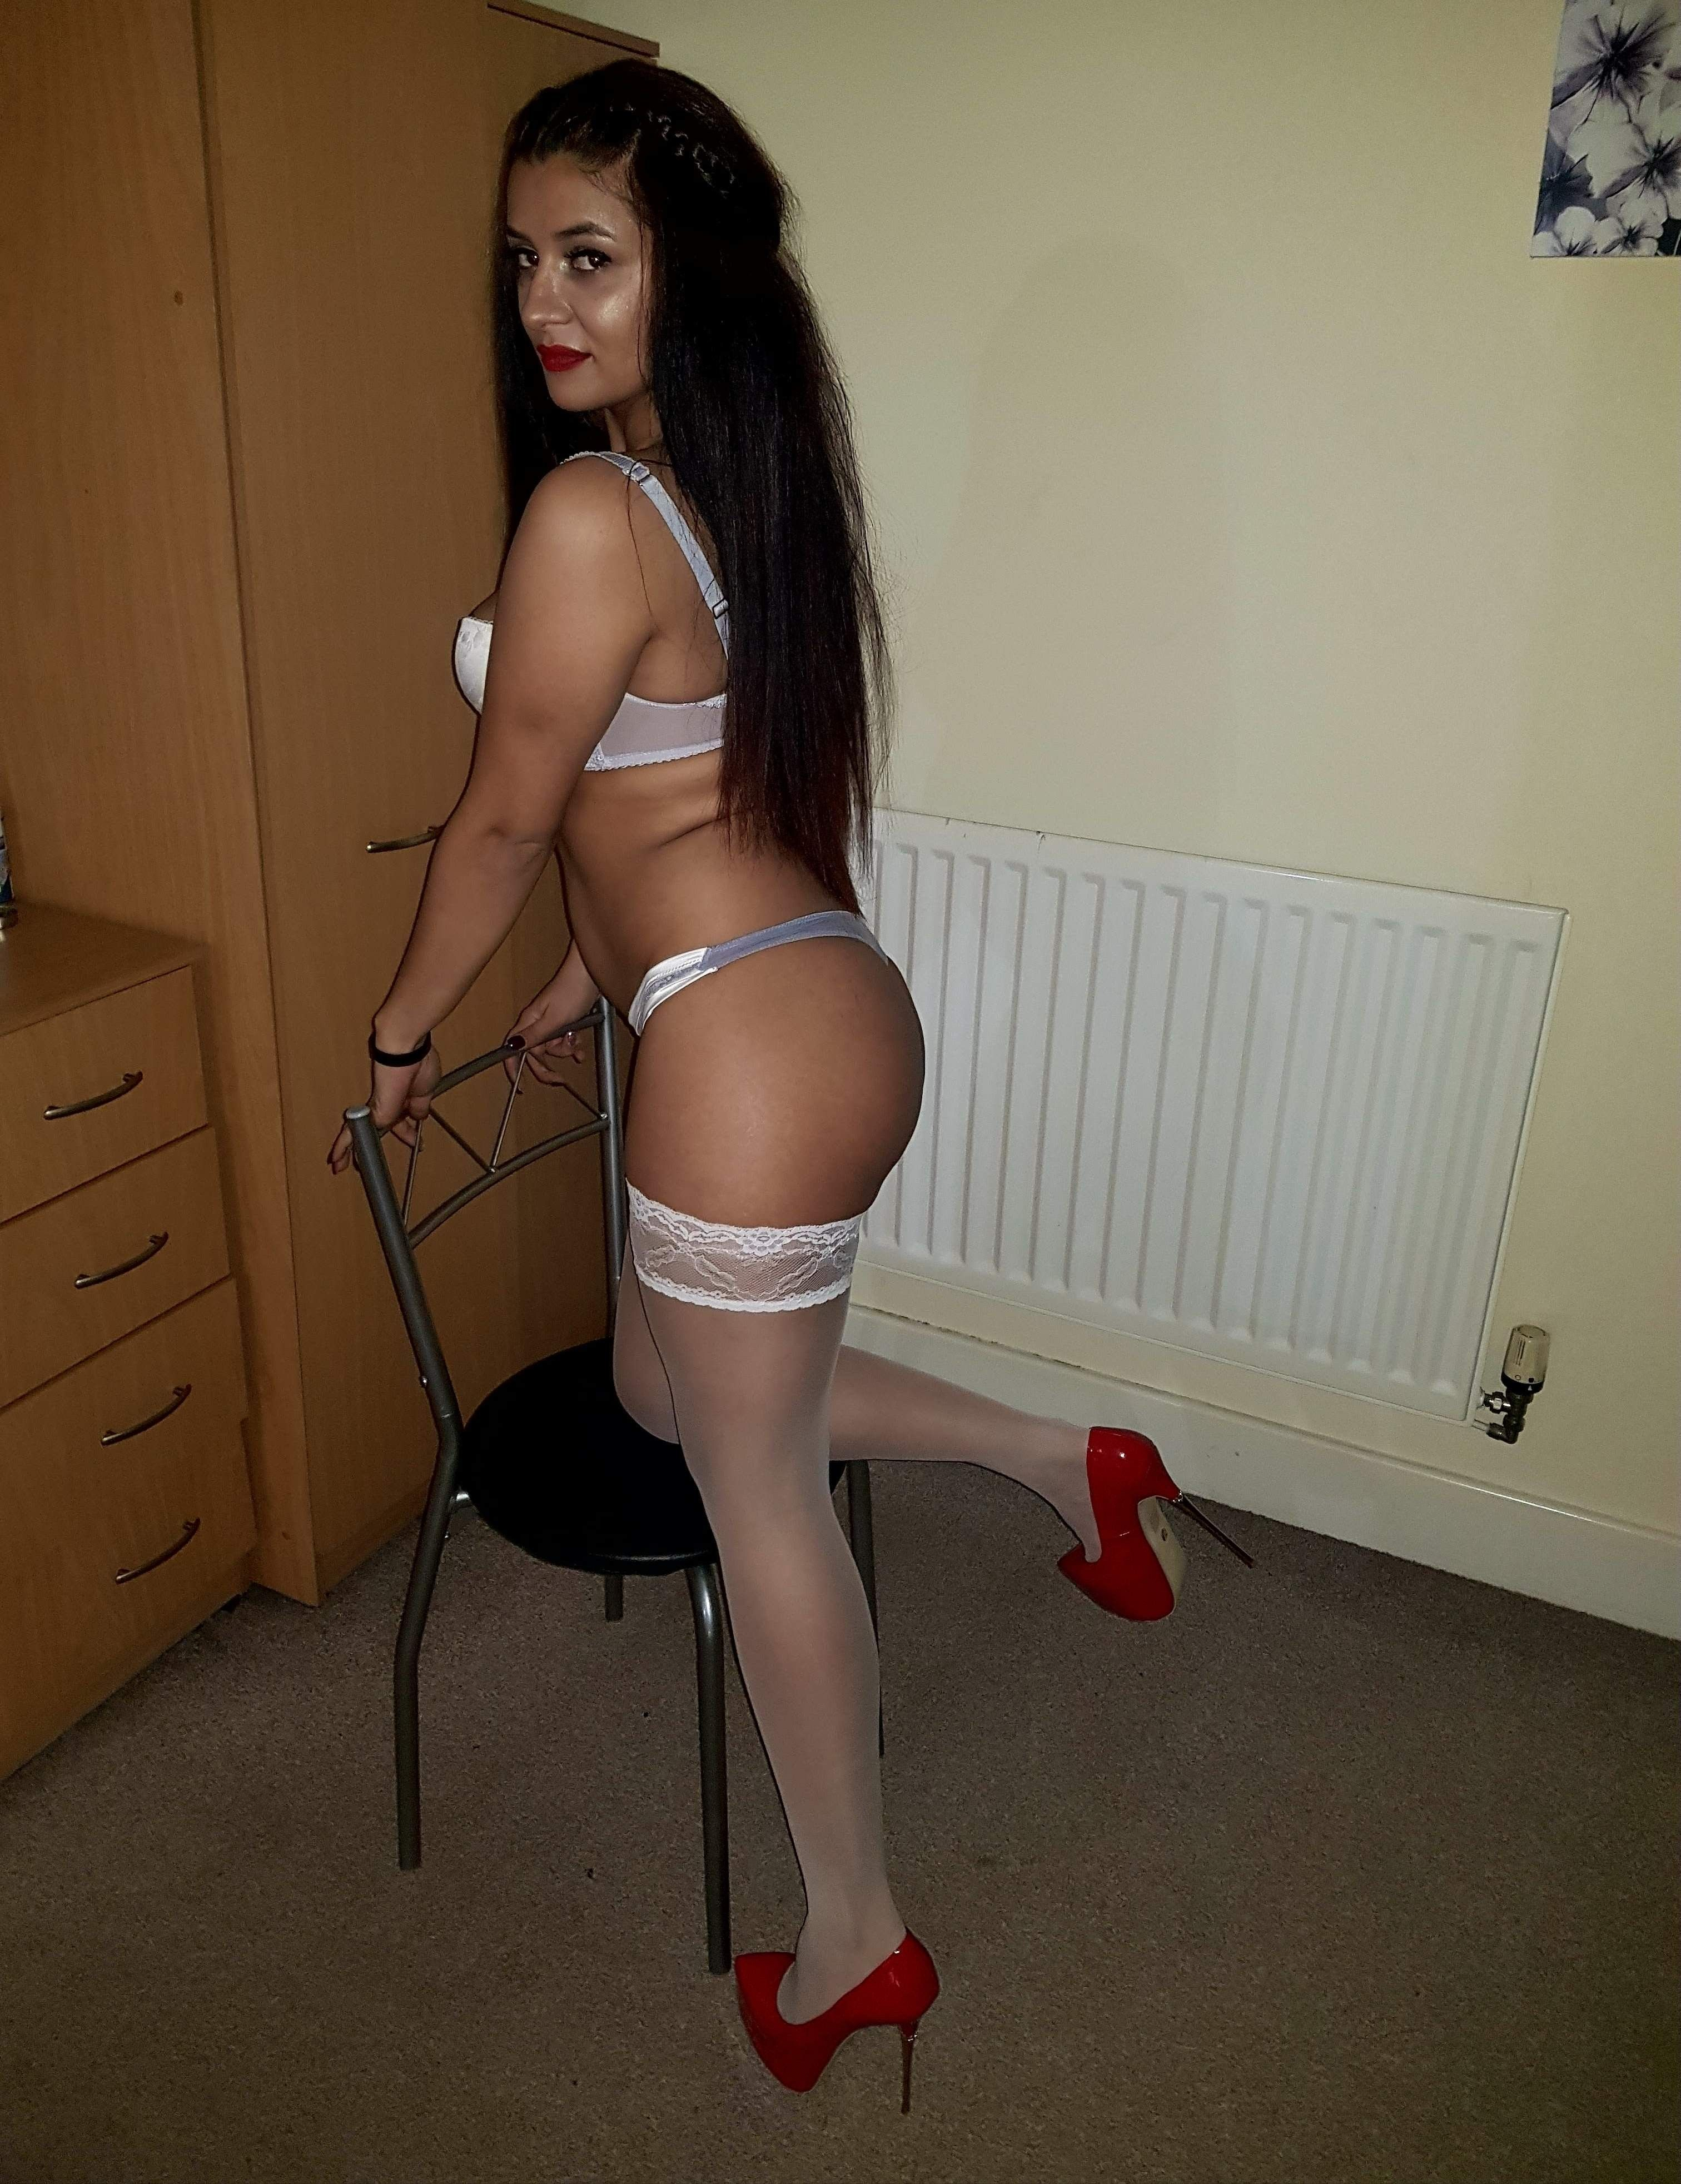 Image URL: http://cg.adultwork.com/G12/6547001.jpg  Click to view this fusker